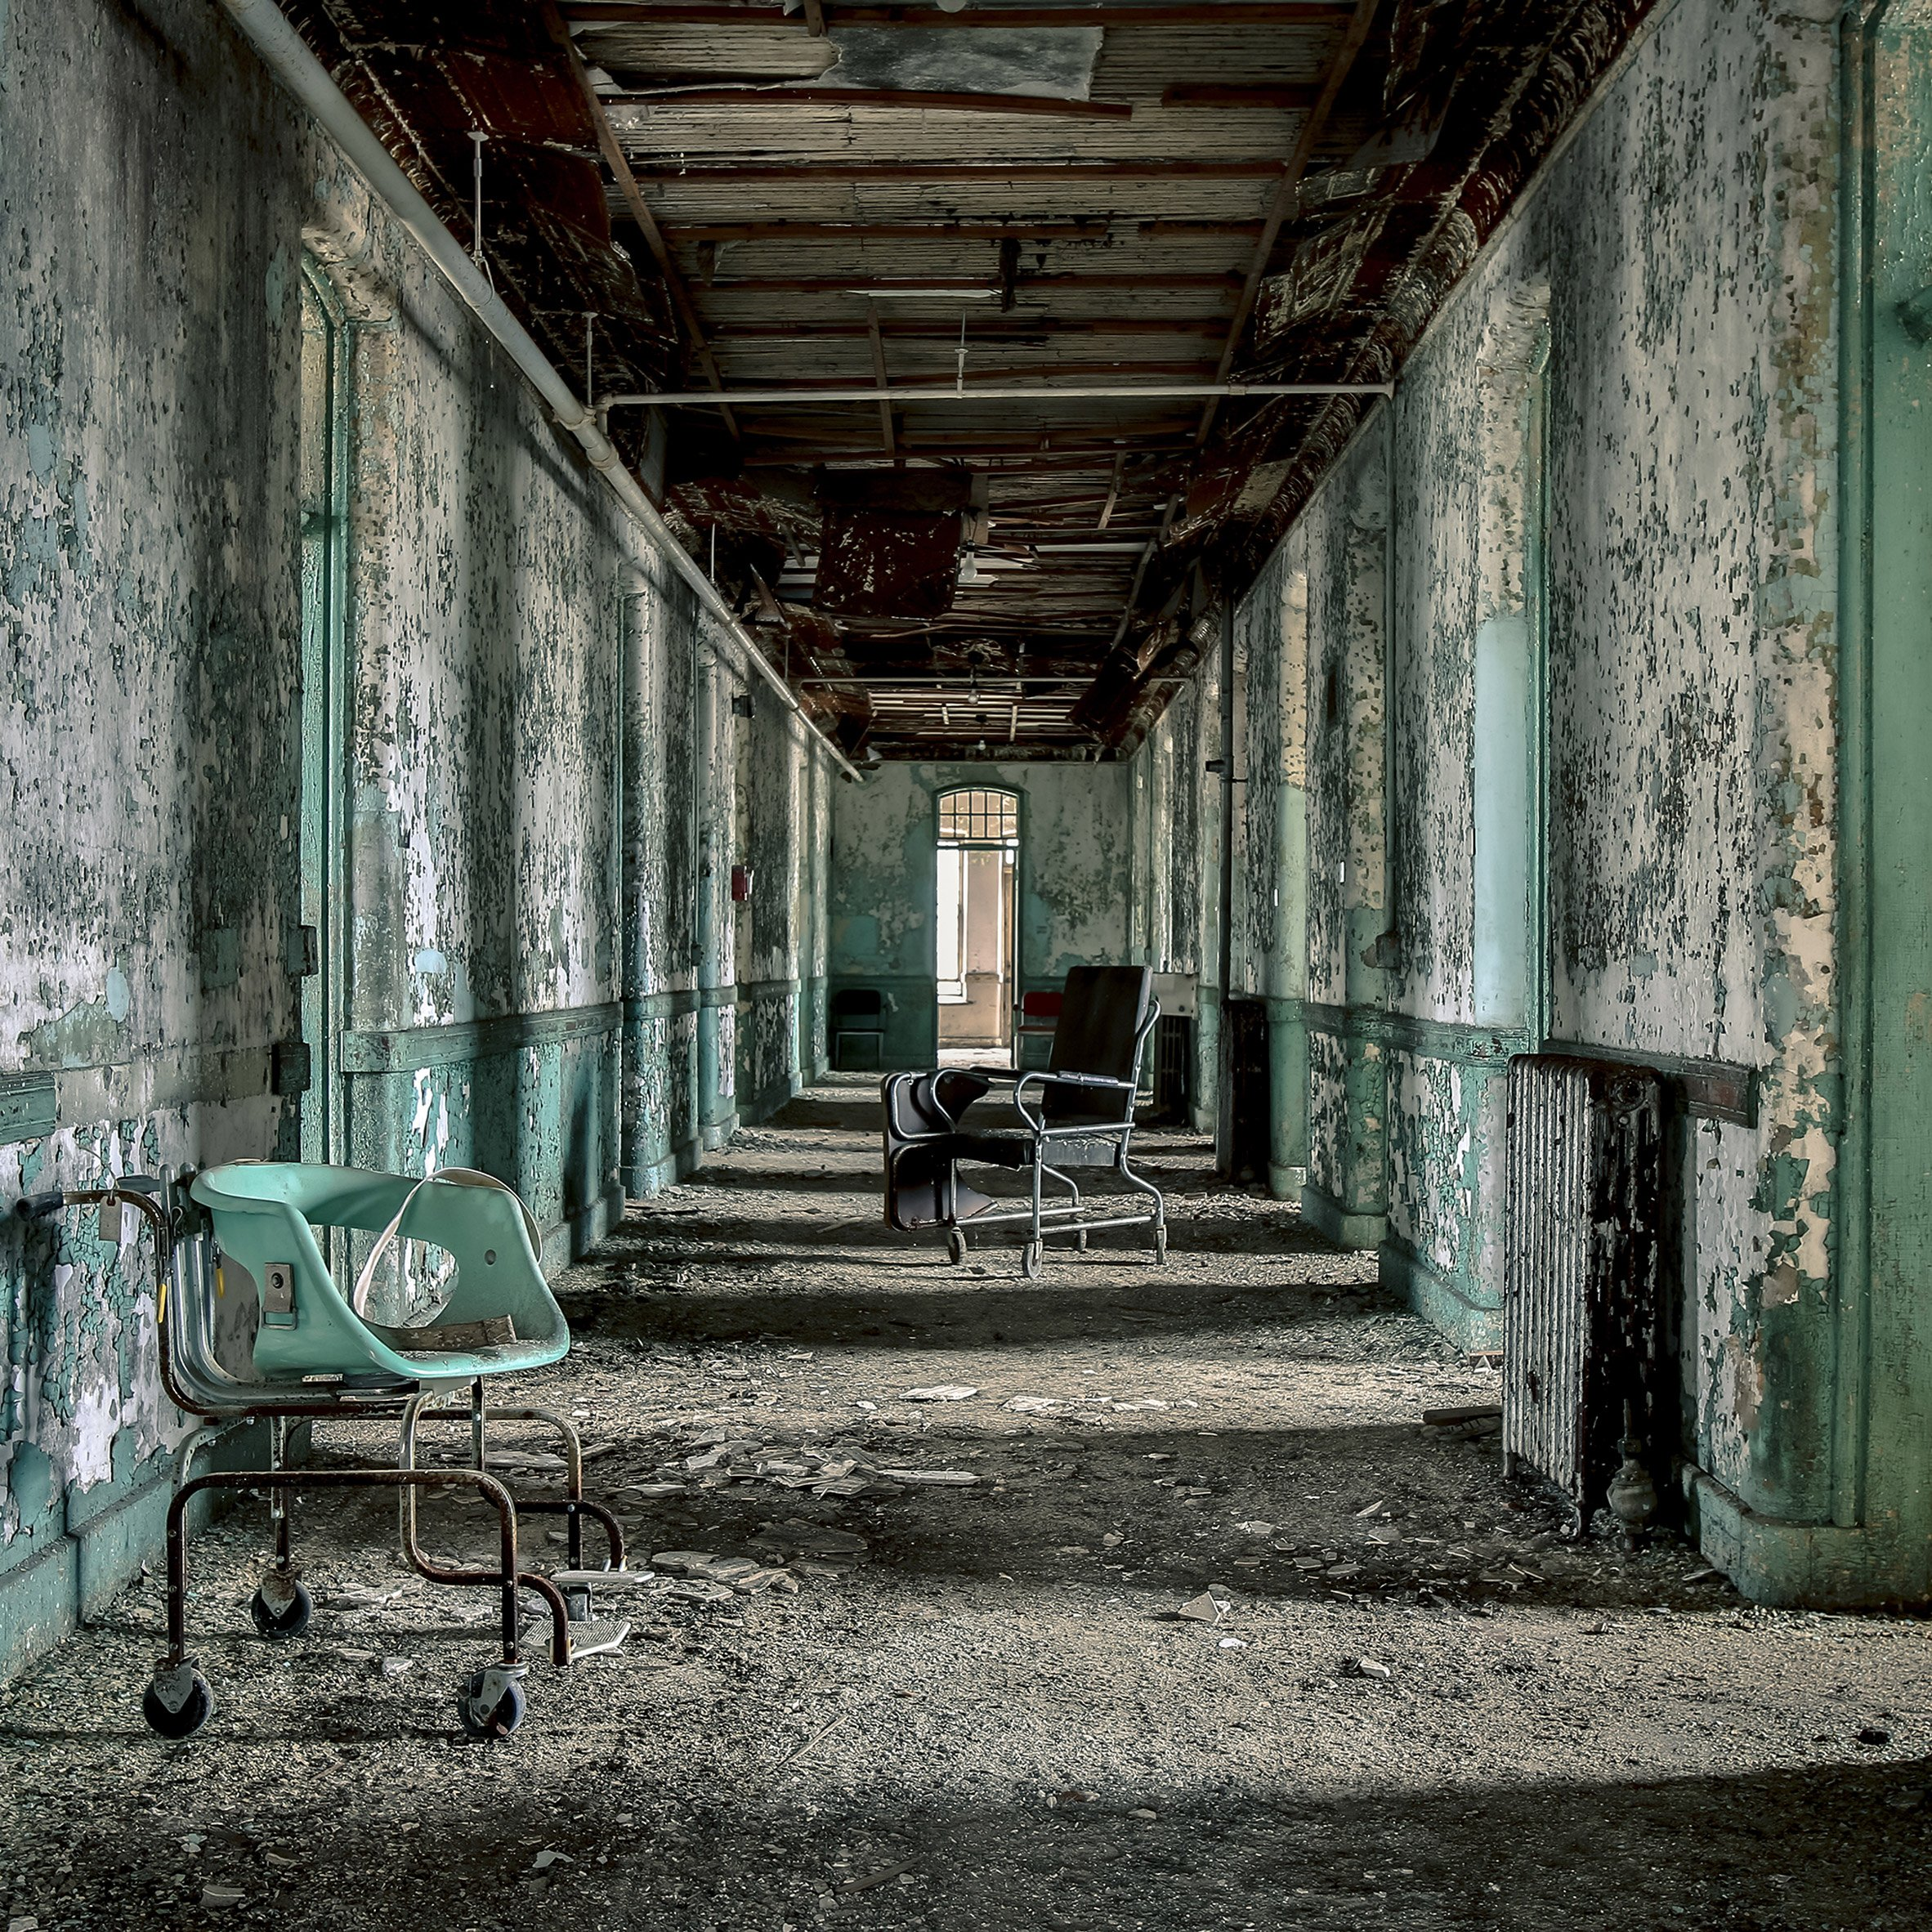 photography essays  matt van der velde photographs abandoned insane asylums